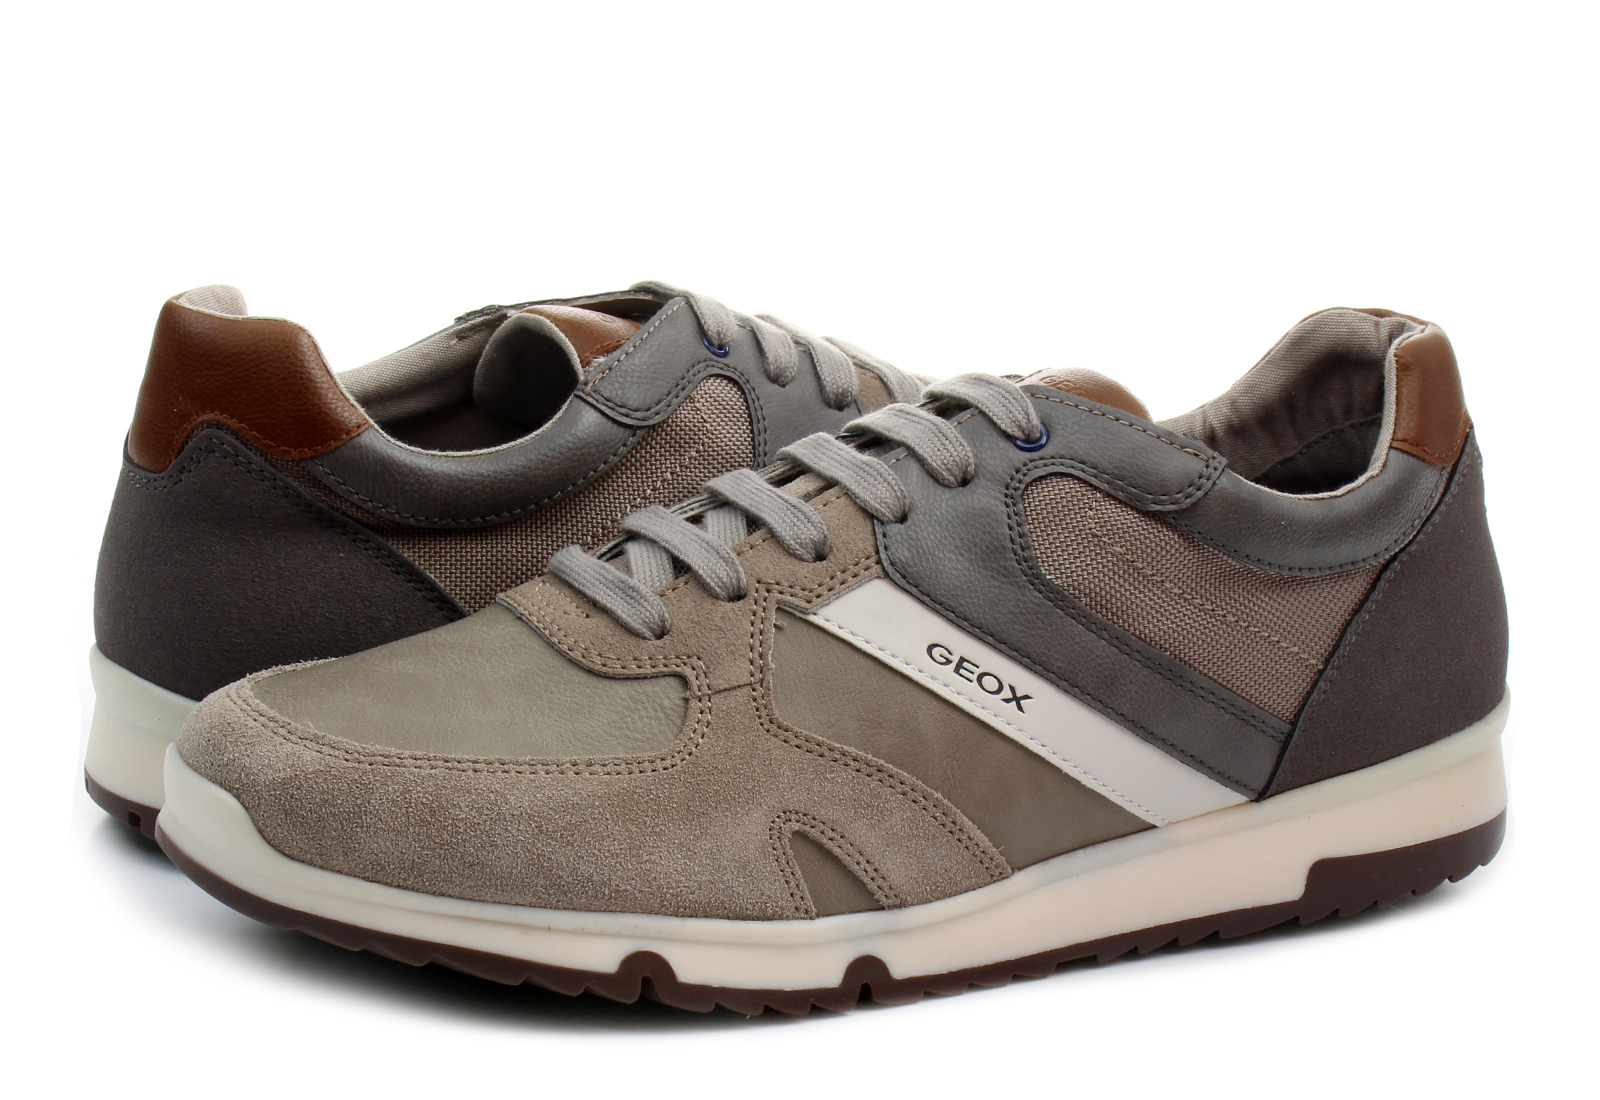 Geox Shoes Wilmer 3xb Me22 5097 Online Shop For